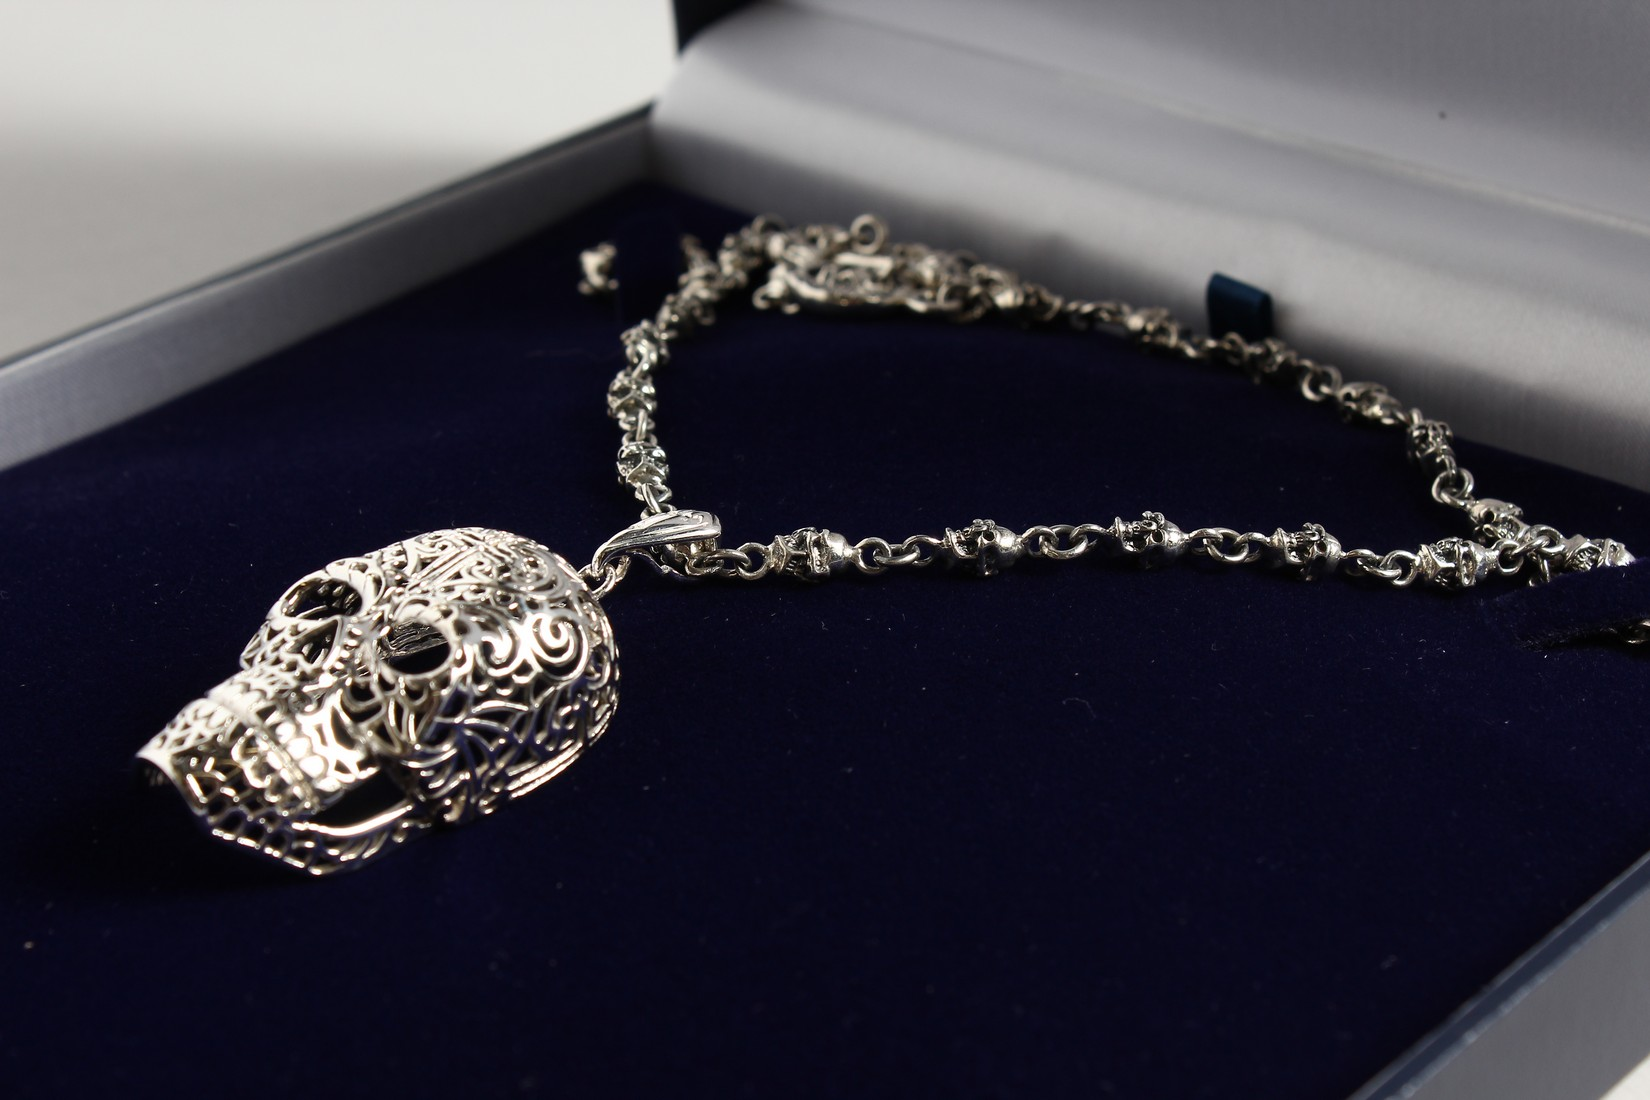 A SILVER SKULL ON A CHAIN. - Image 2 of 3